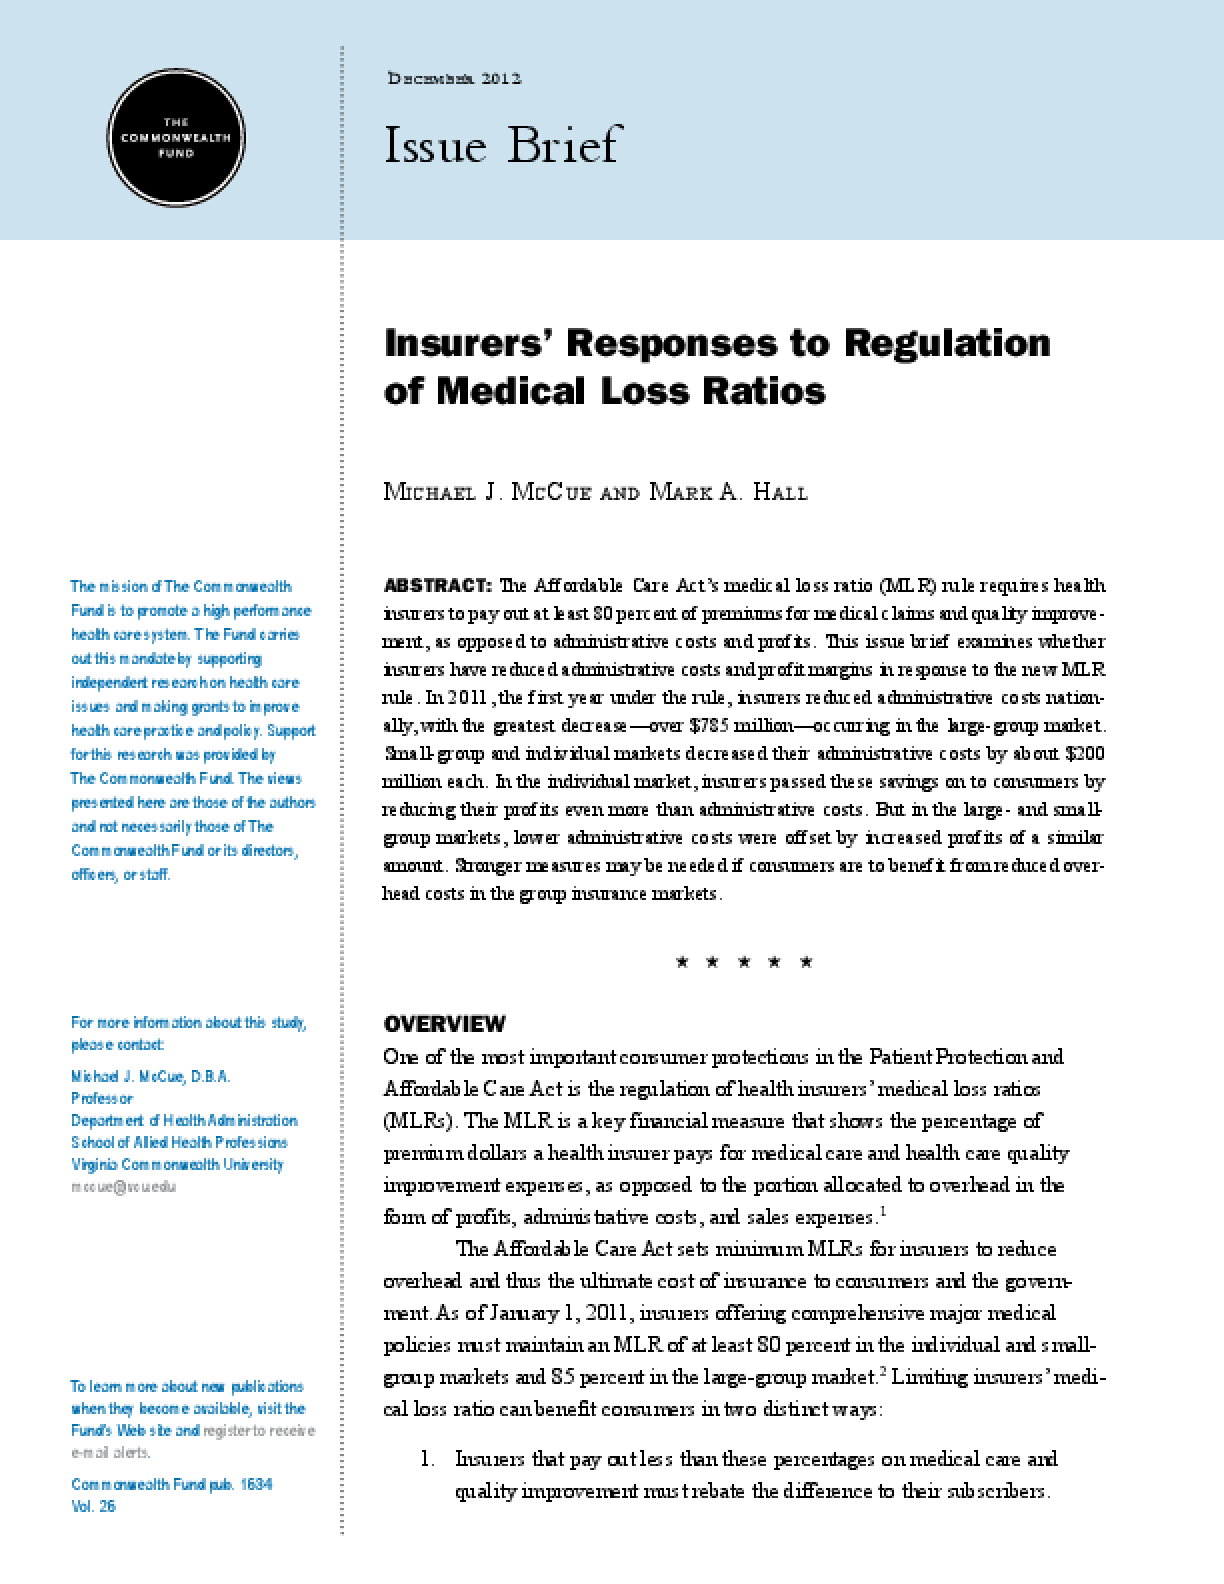 Insurers' Responses to Regulation of Medical Loss Ratios